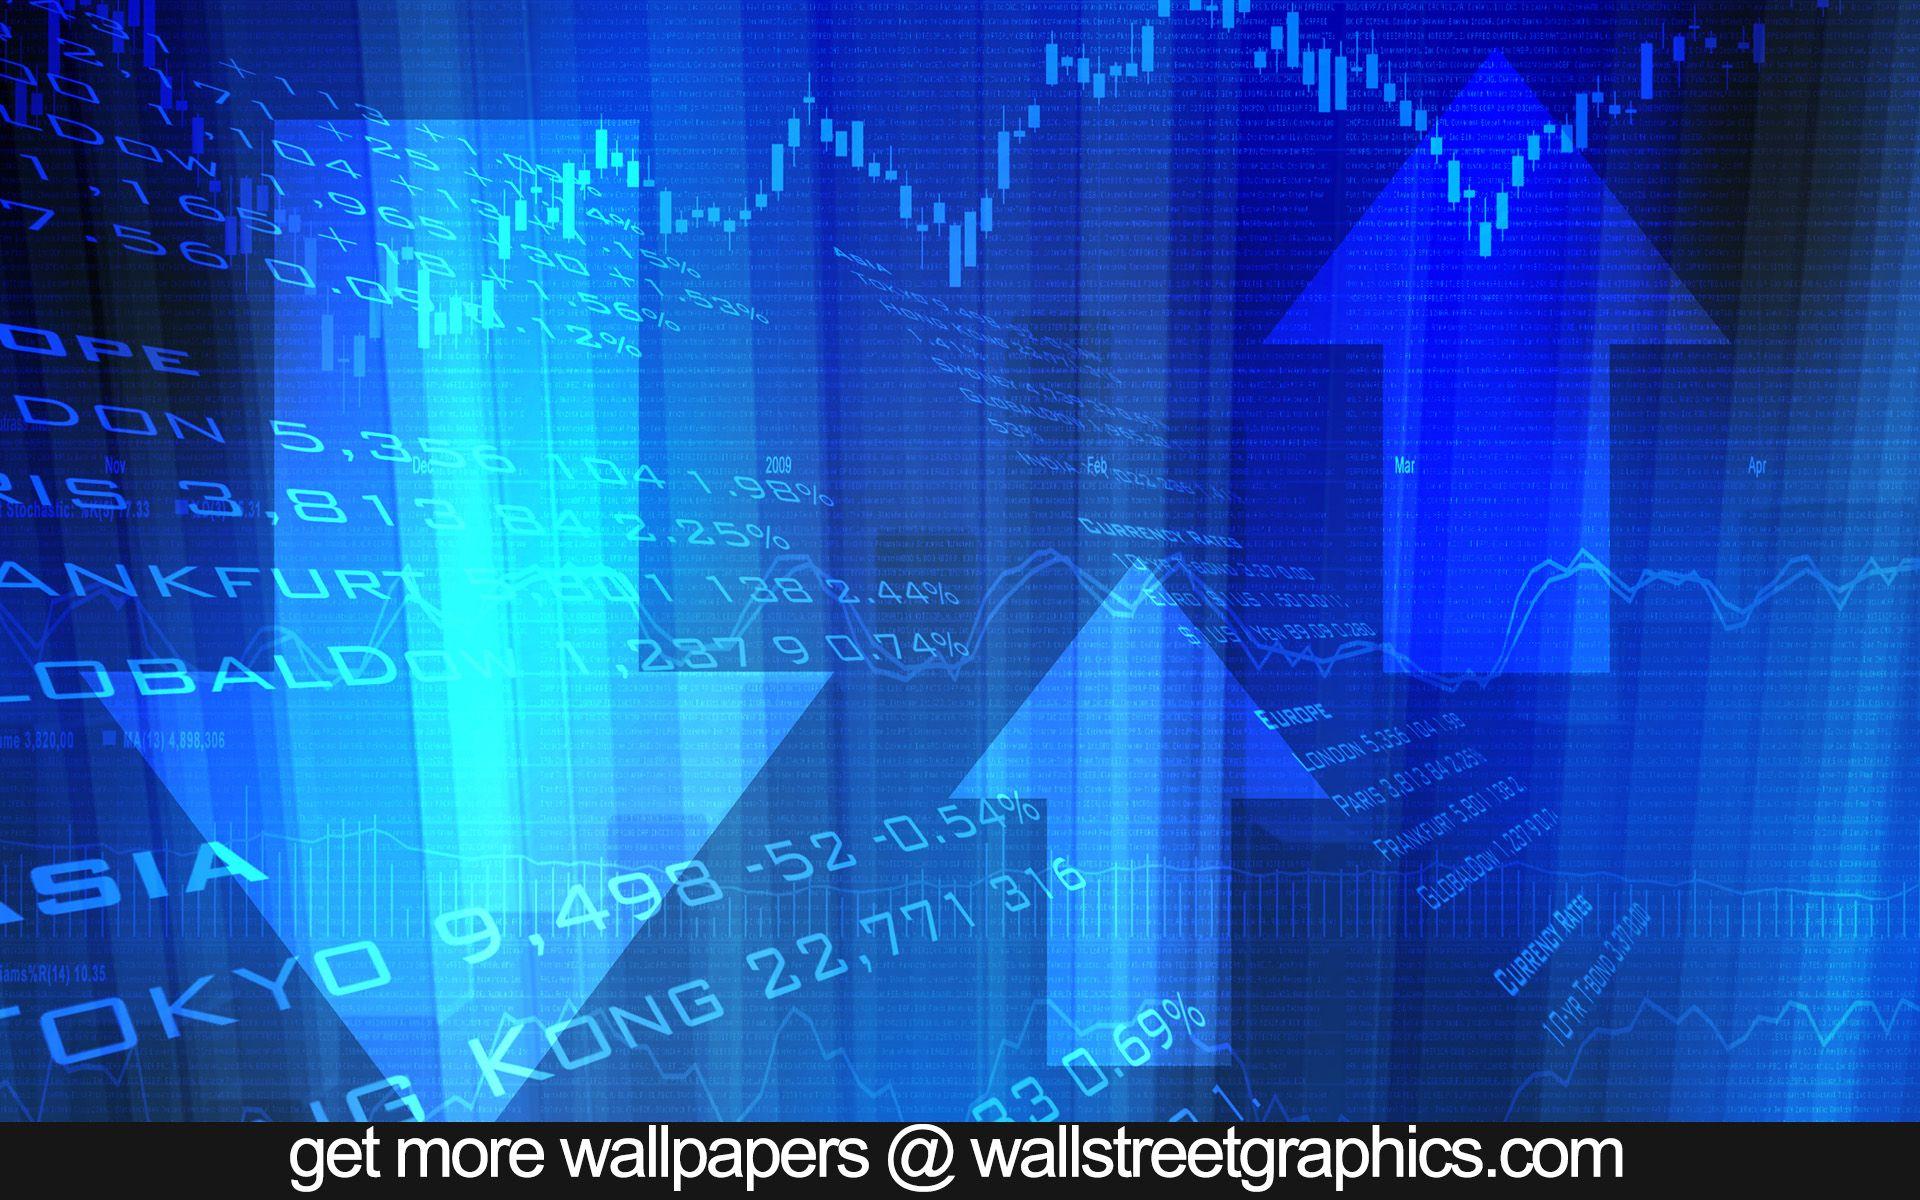 wall street stock market graphs and loopable background